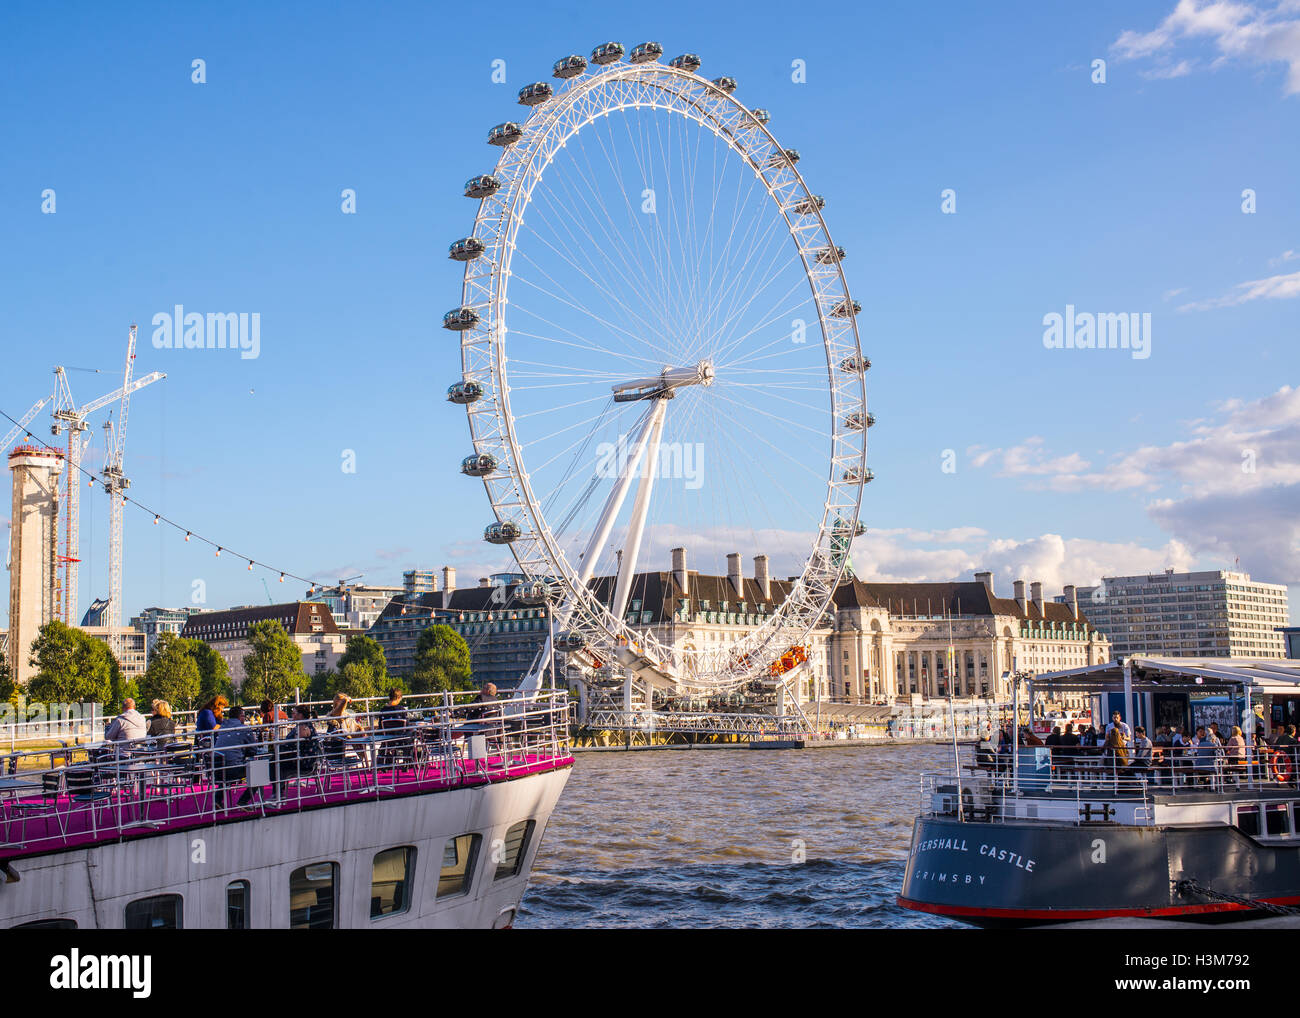 People drinking and eating on boat restaurants under the London Eye while cruising on the Thames - Stock Image